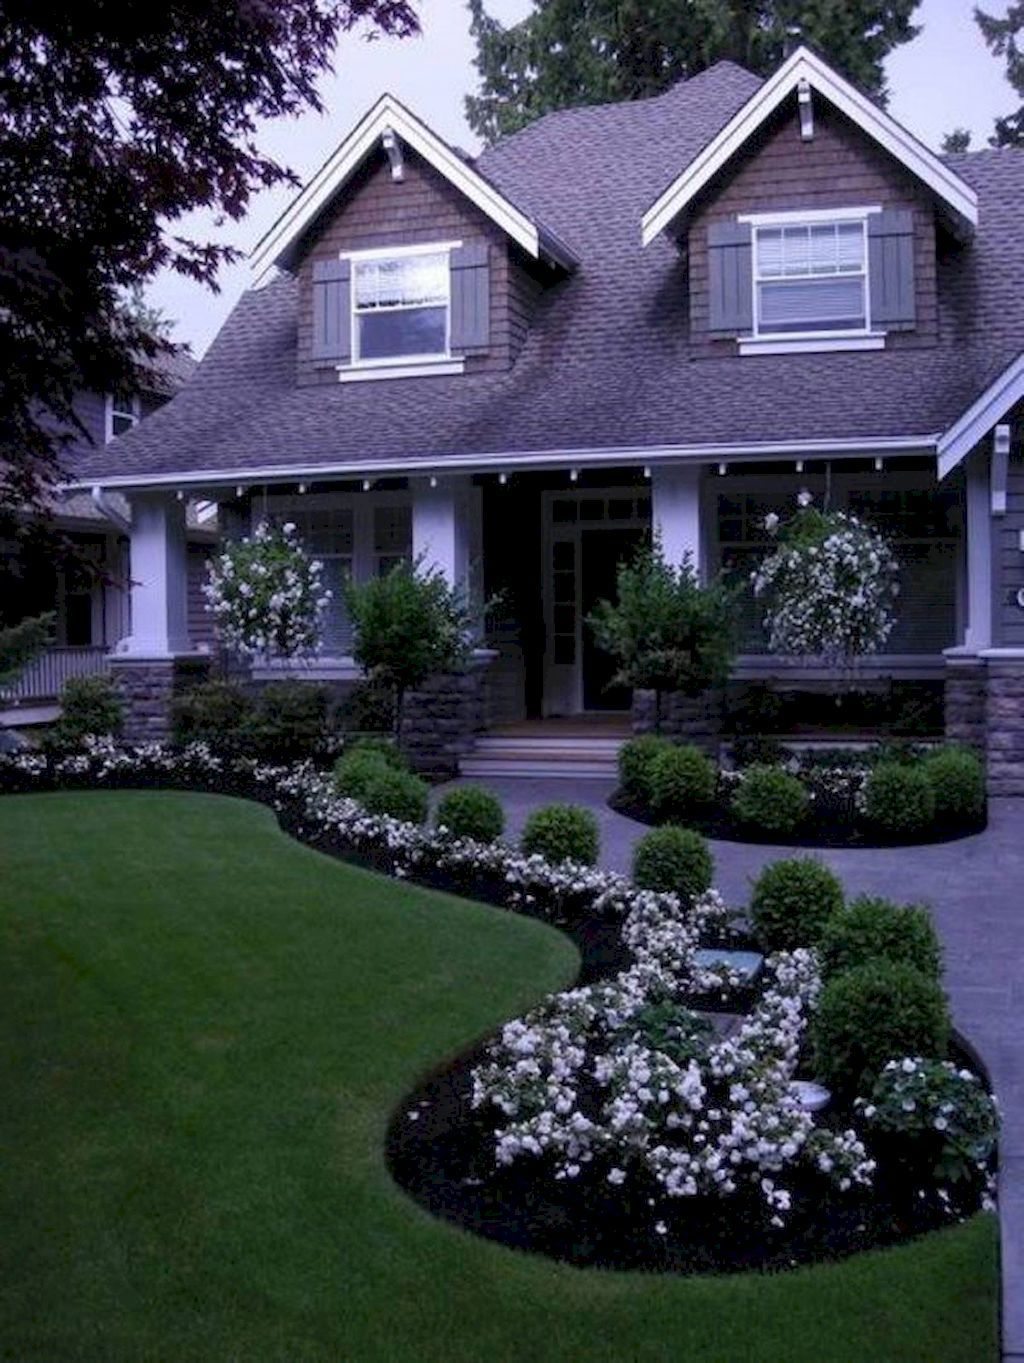 Front Lawn Garden Design Of 40 Beautiful Front Yard Landscaping Ideas Yard